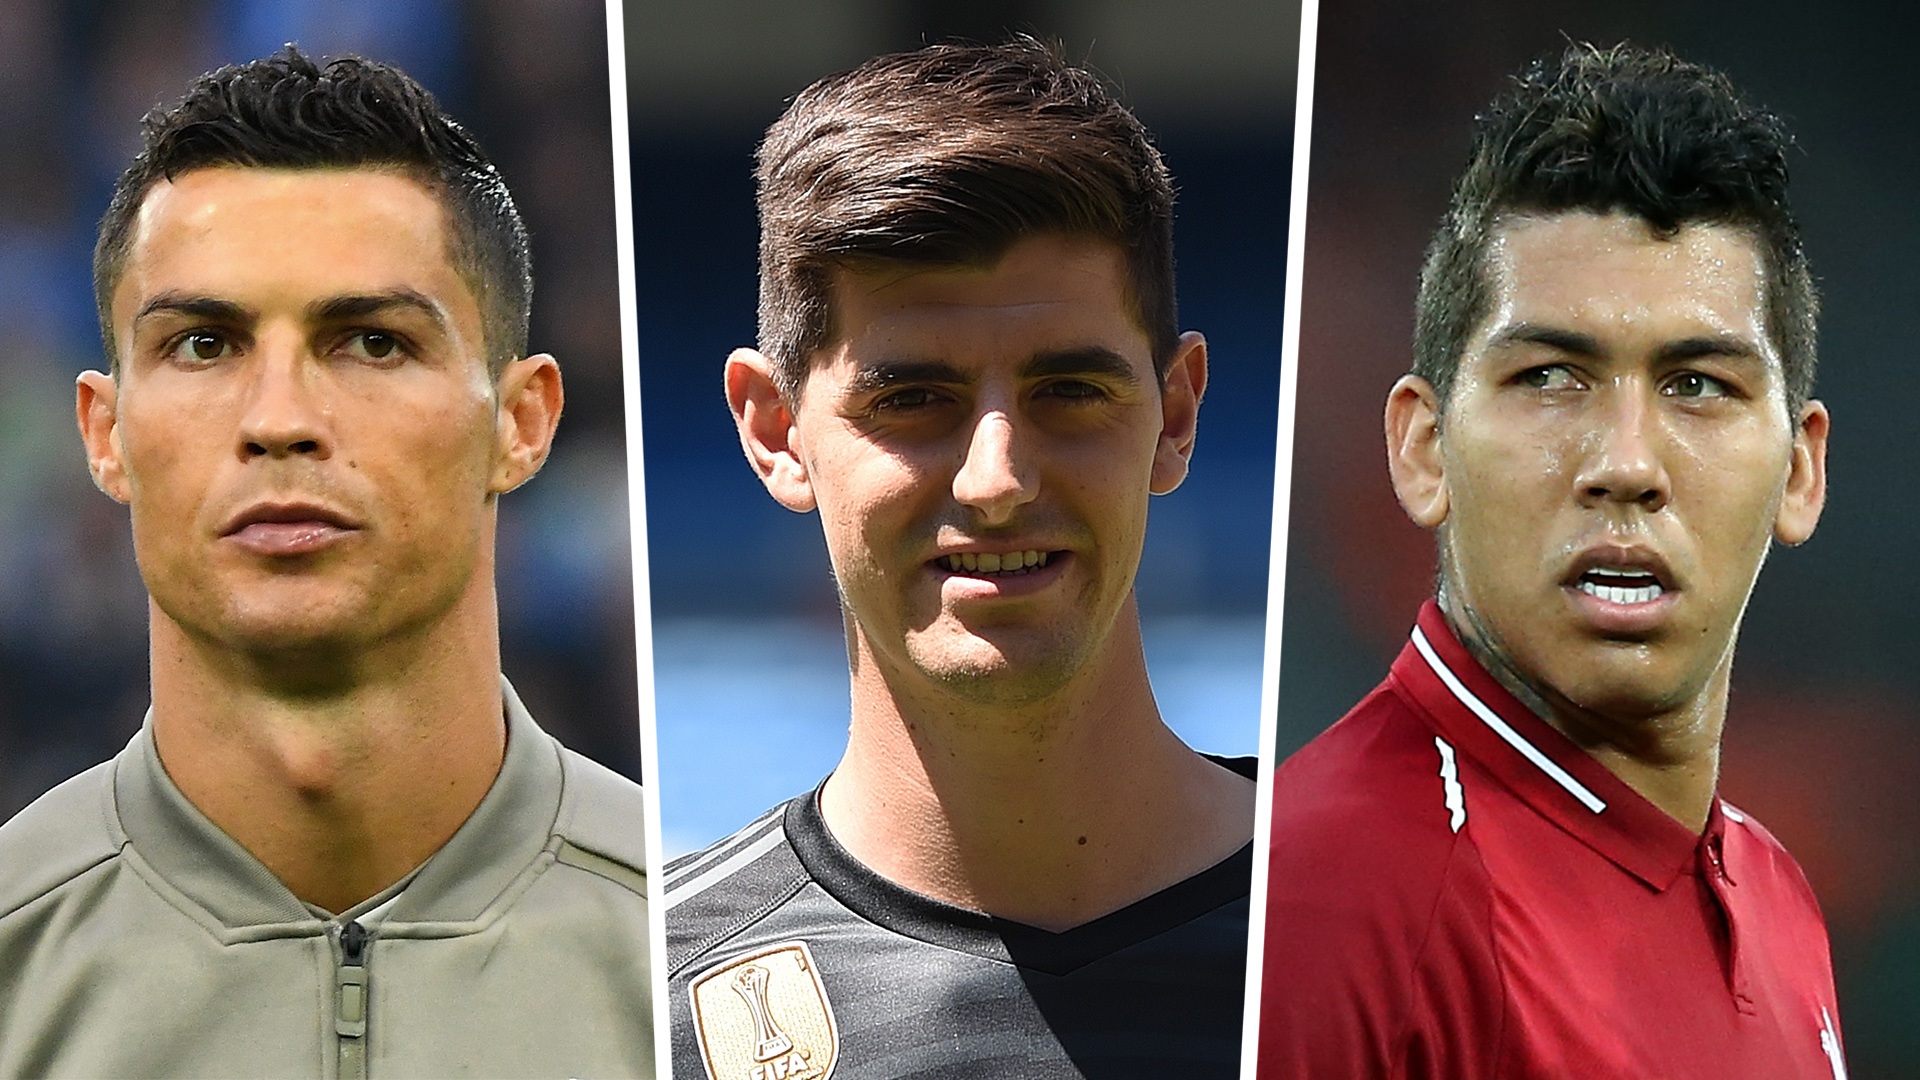 Ballon d'Or 2018: Ronaldo, Courtois nominated but De Gea misses out